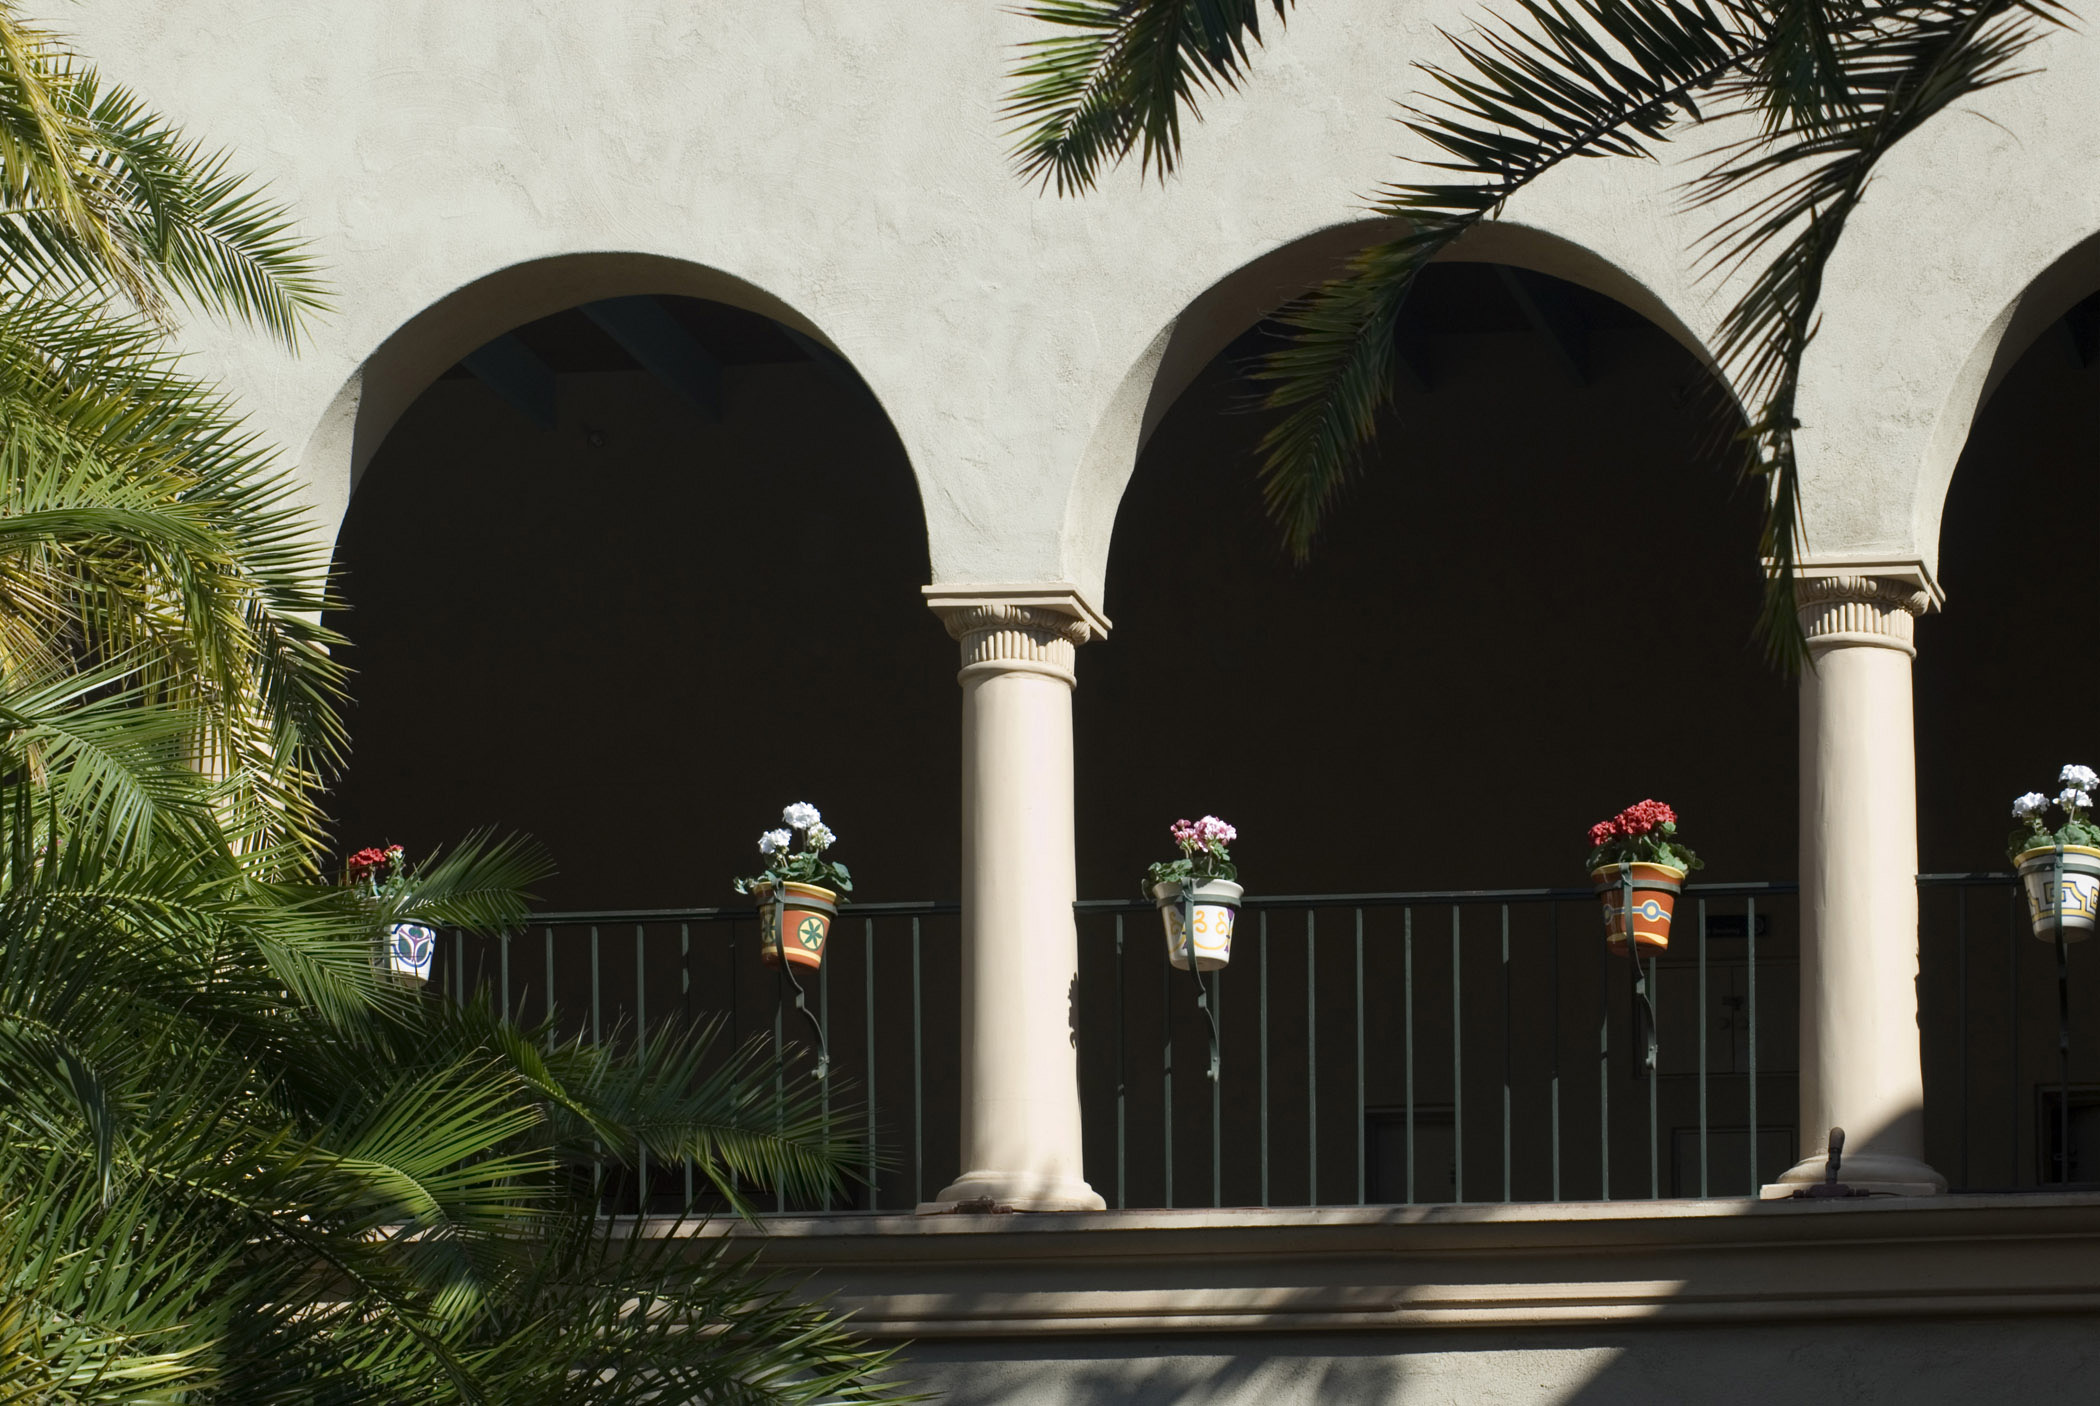 Arched facade decorated with flower pots and tropical palms in Balboa Park, an urban cultural park in San Diego, California,